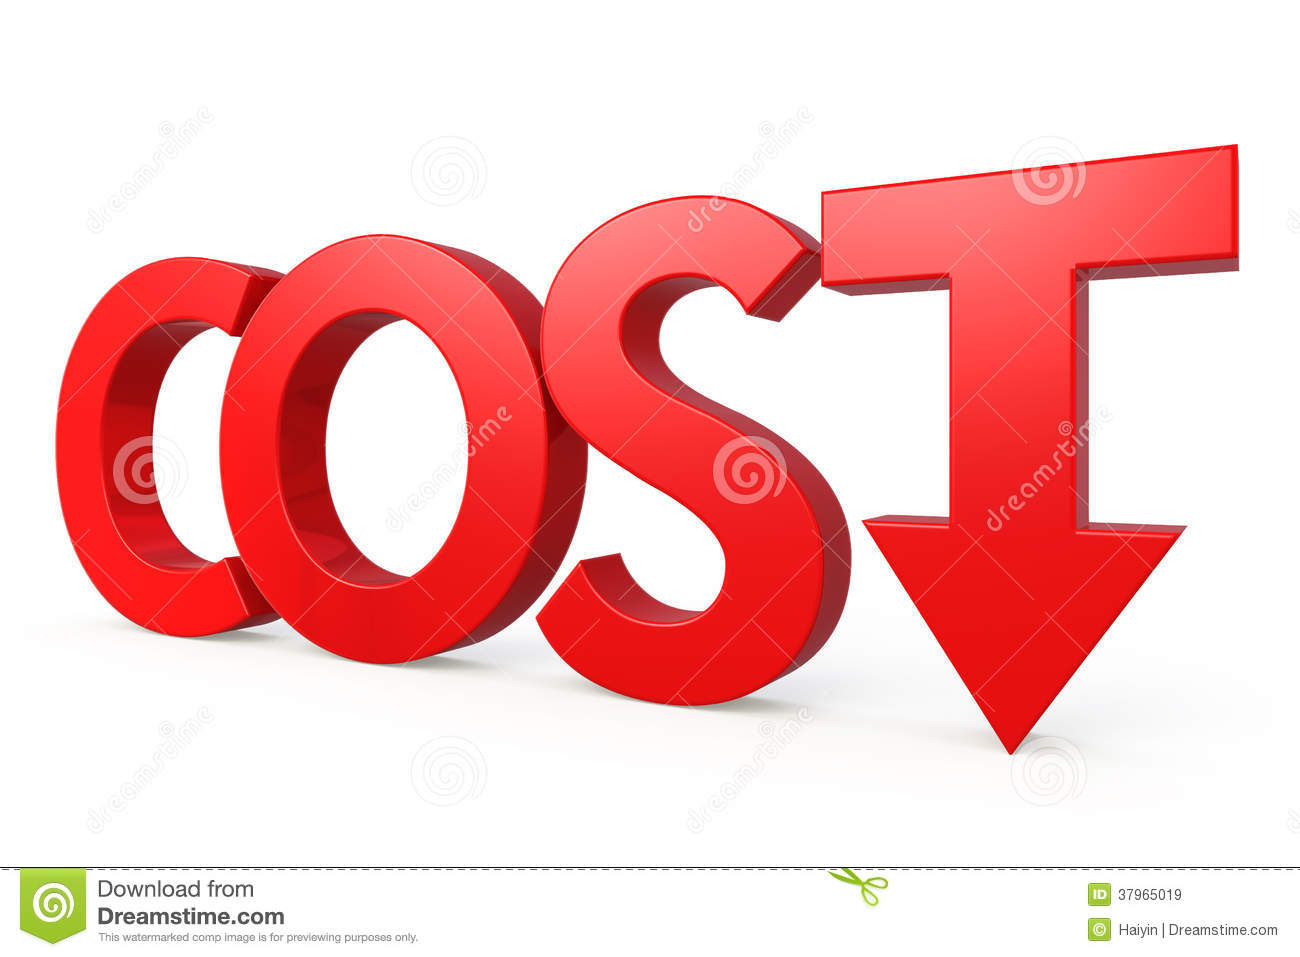 Cost down concept stock illustration. Illustration of down - 37965019